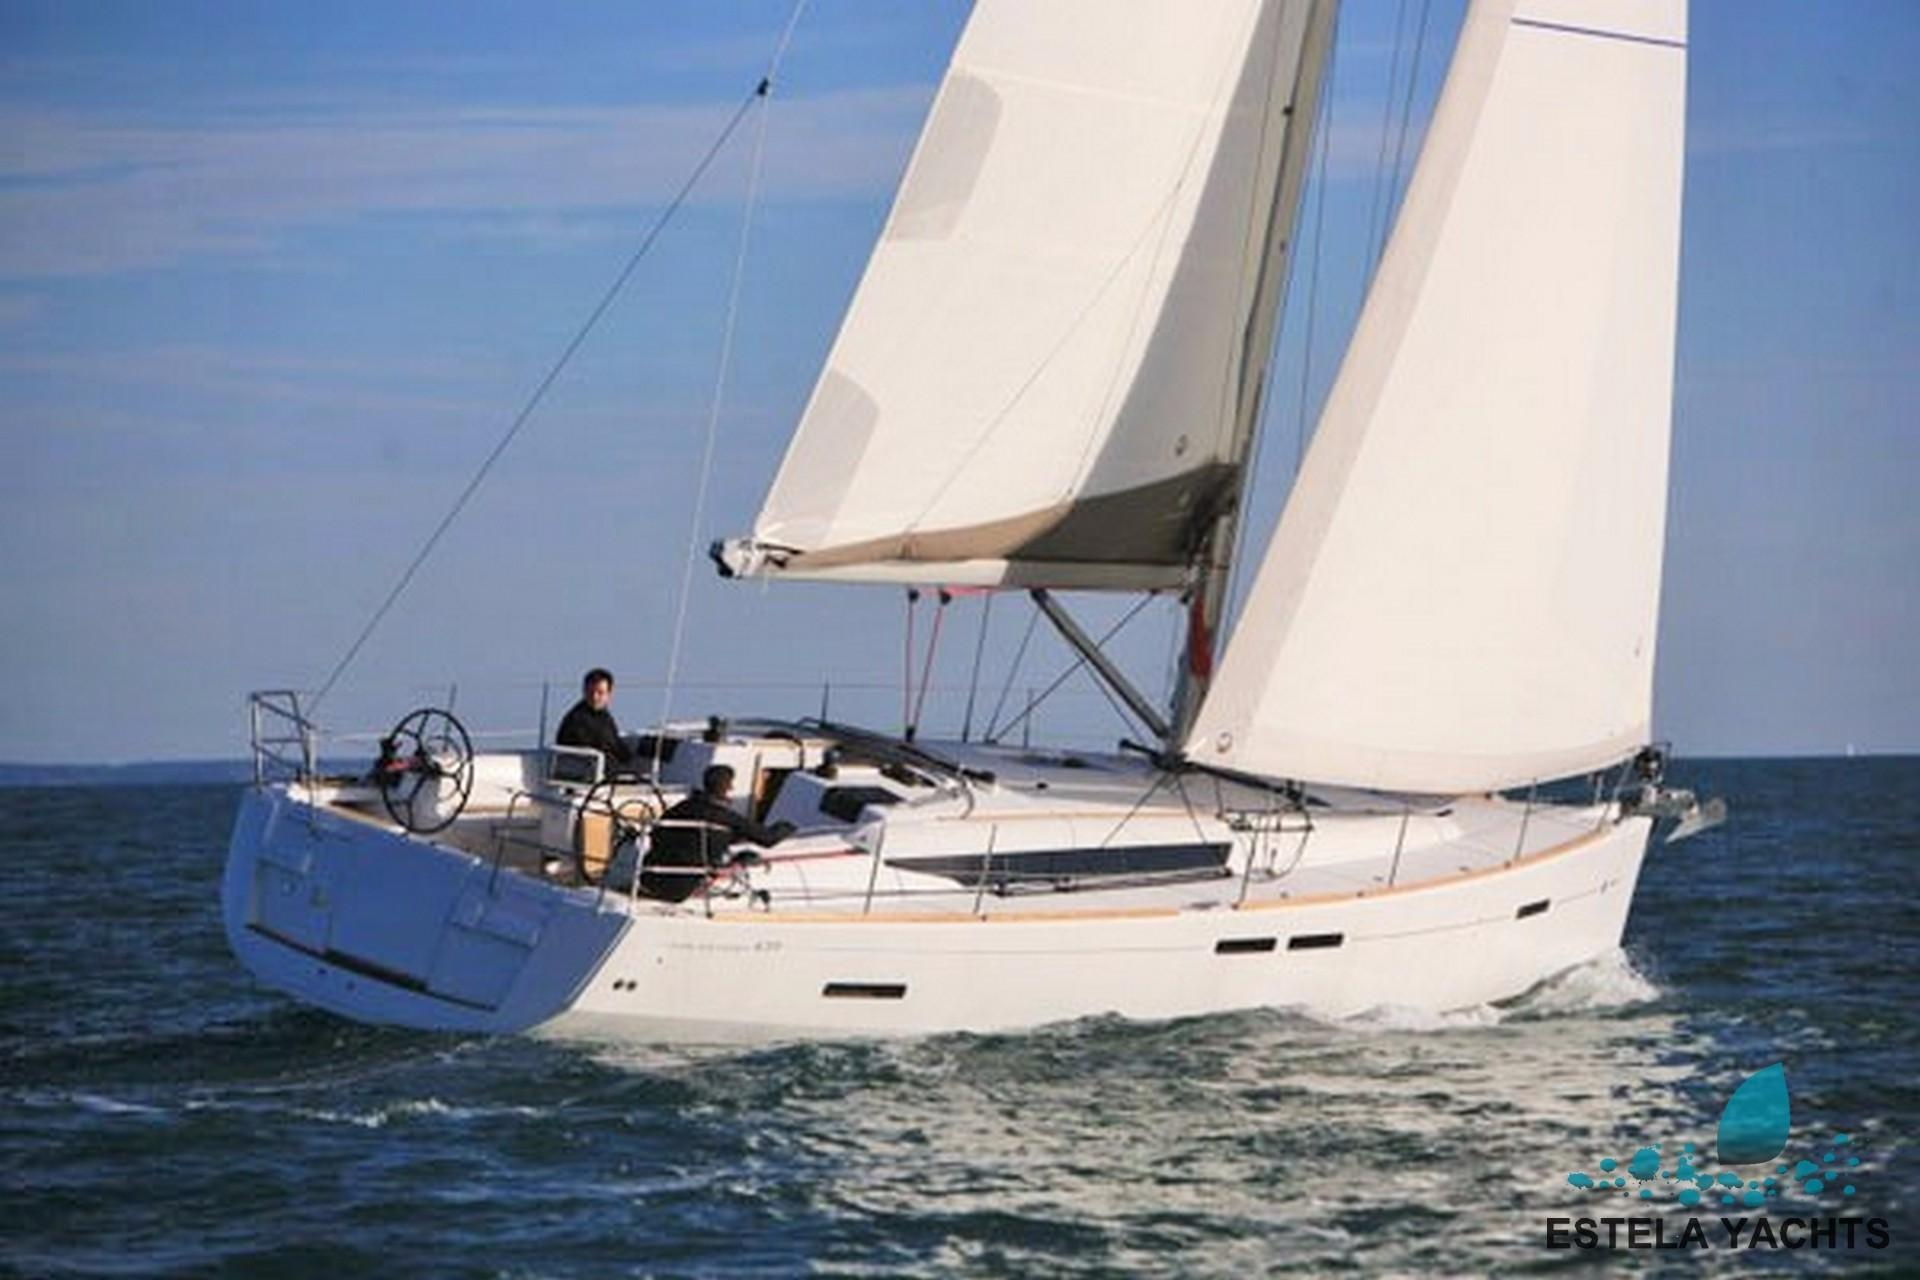 6536261_20171118091516091_1_XLARGE&w=924&h=693&t=1511025410000 2012 jeanneau sun odyssey 439 sail boat for sale www yachtworld com  at edmiracle.co